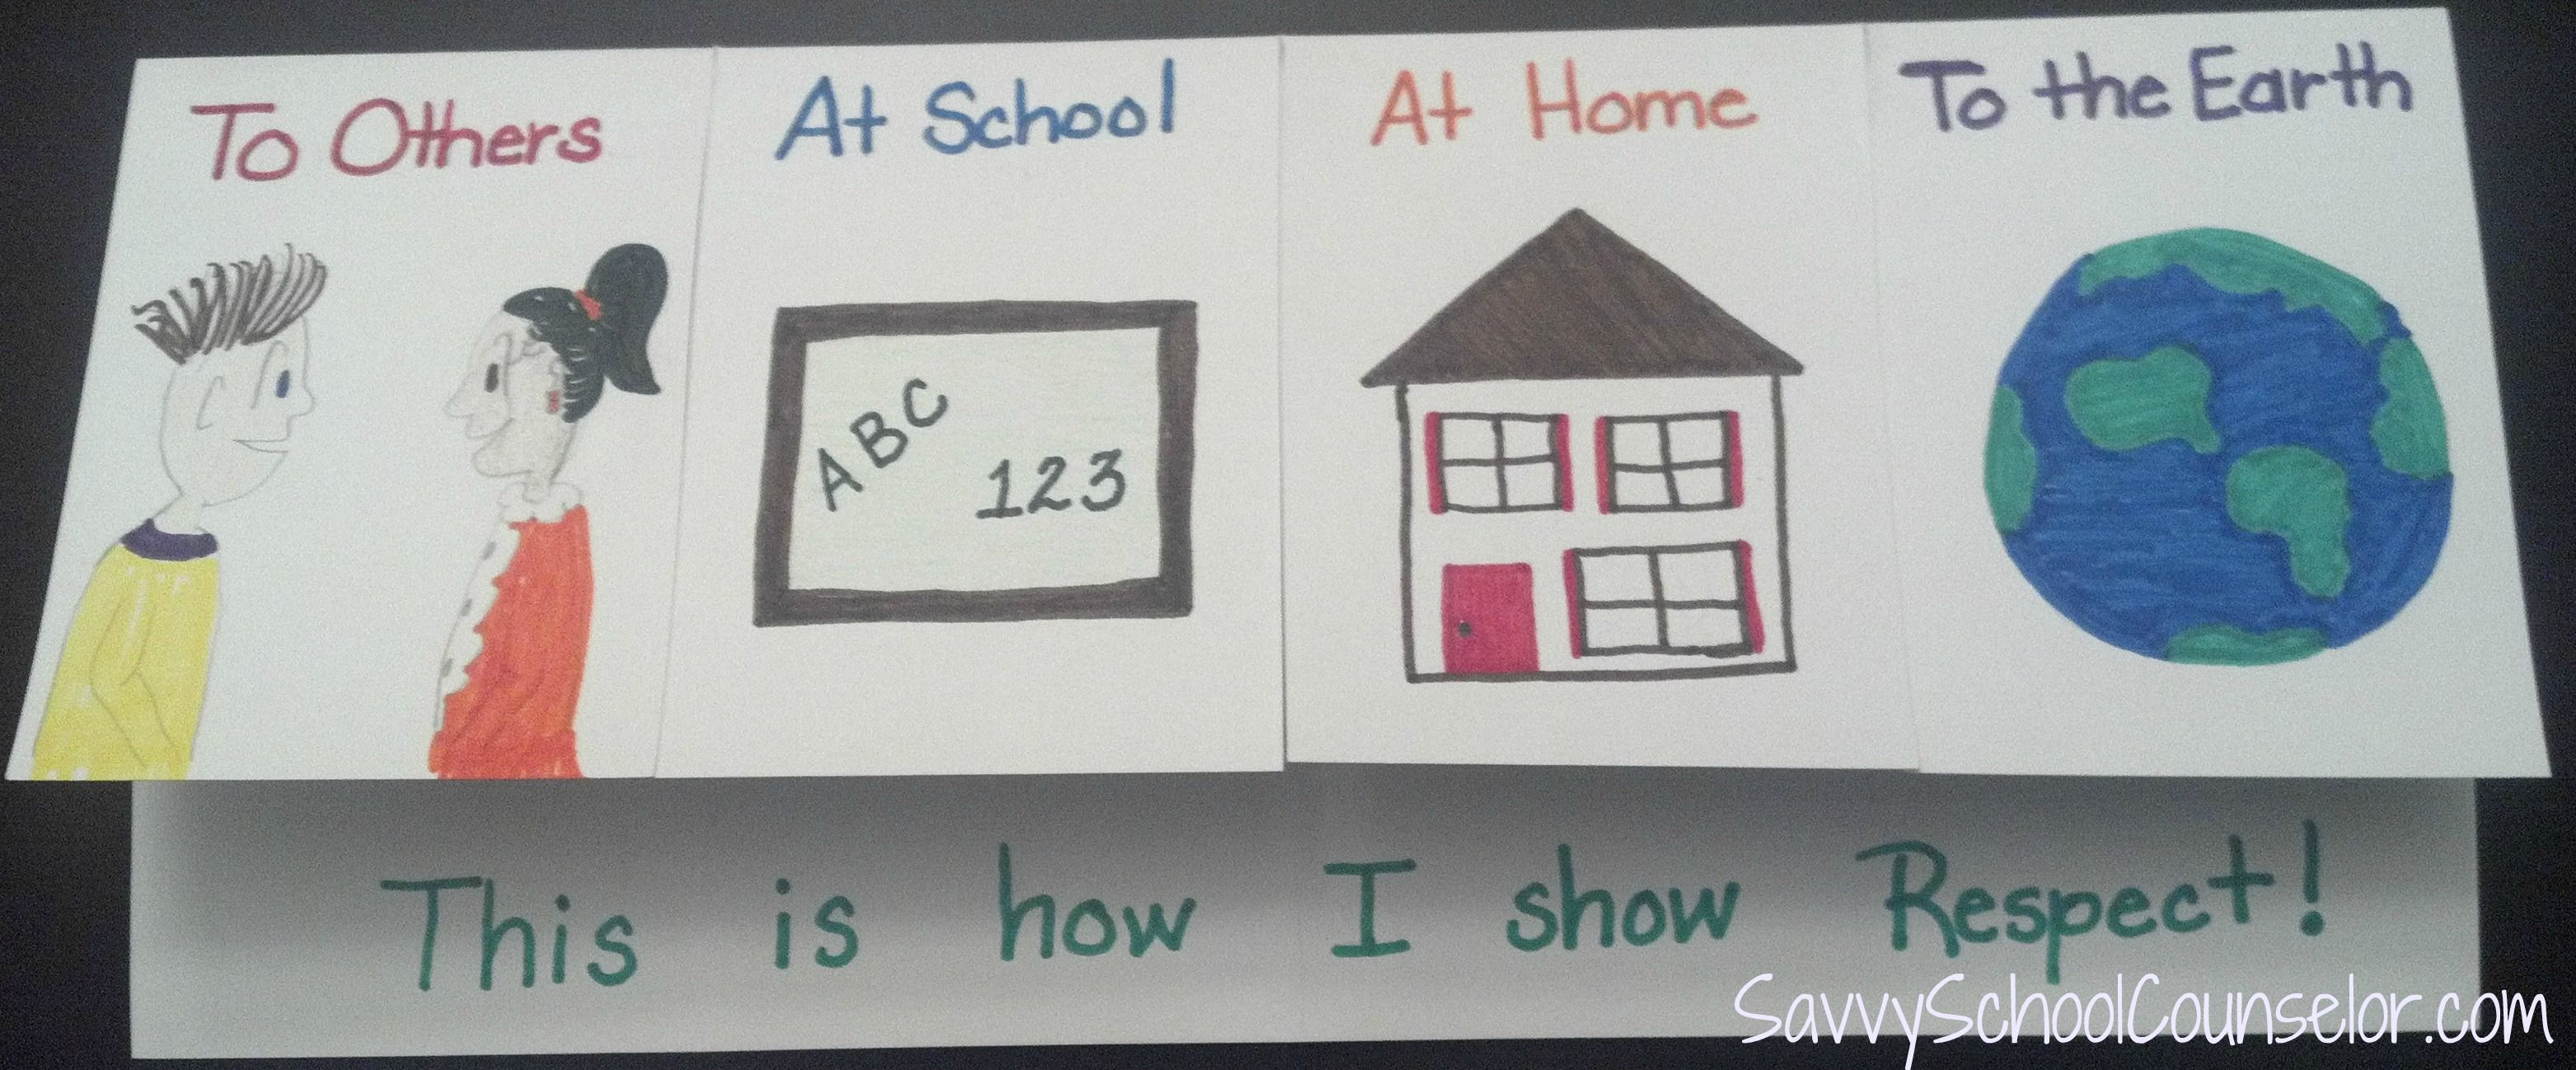 Respect Foldable 4 Flaps Could Be Used To Show Kindness How You Show Kindness To Others In